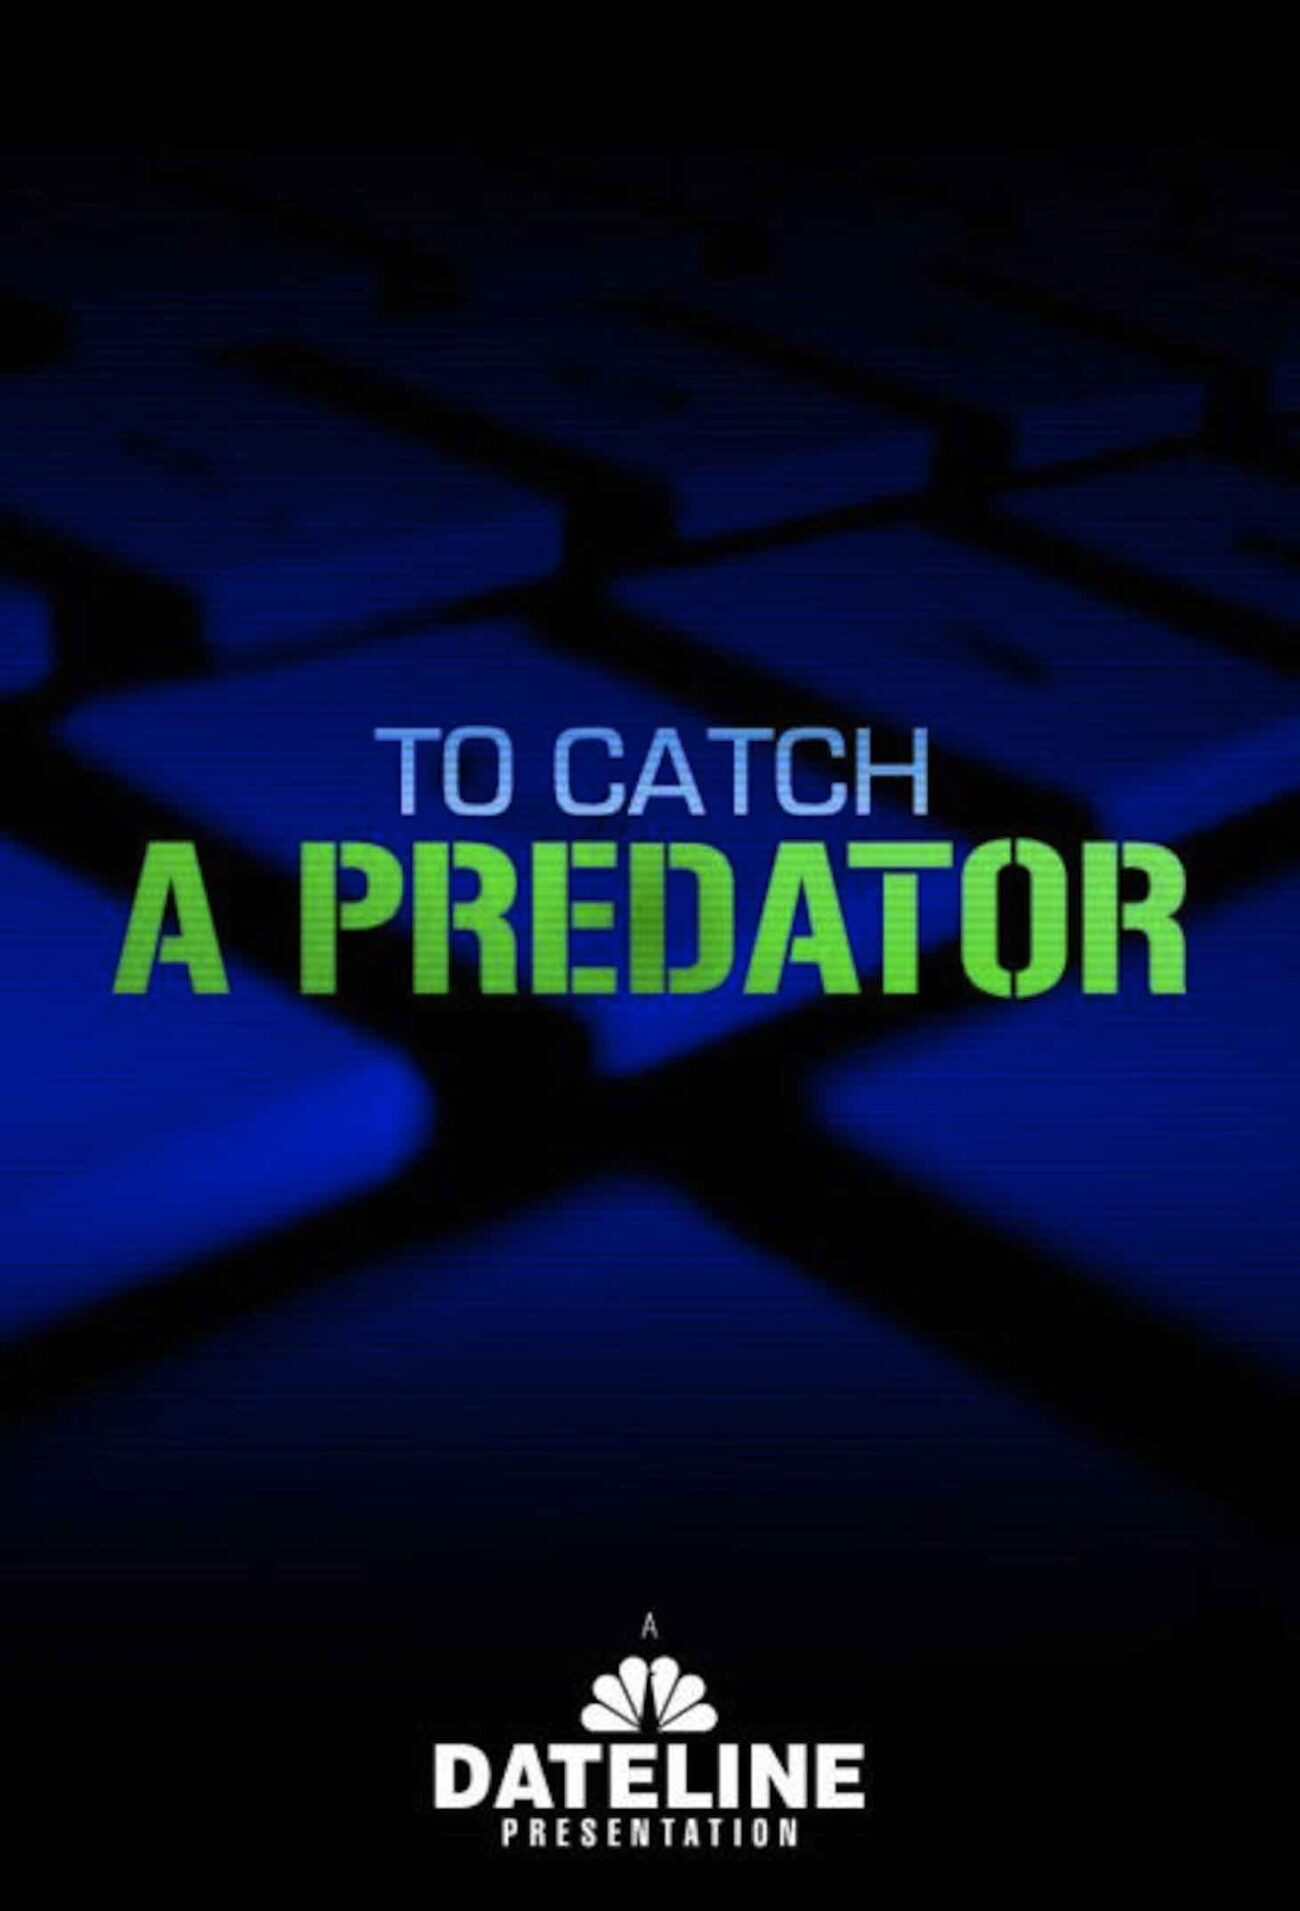 There were few more riveting true-crime TV shows than the reality series 'To Catch a Predator' on 'Dateline'. Here's what we know about the tragic suicide.